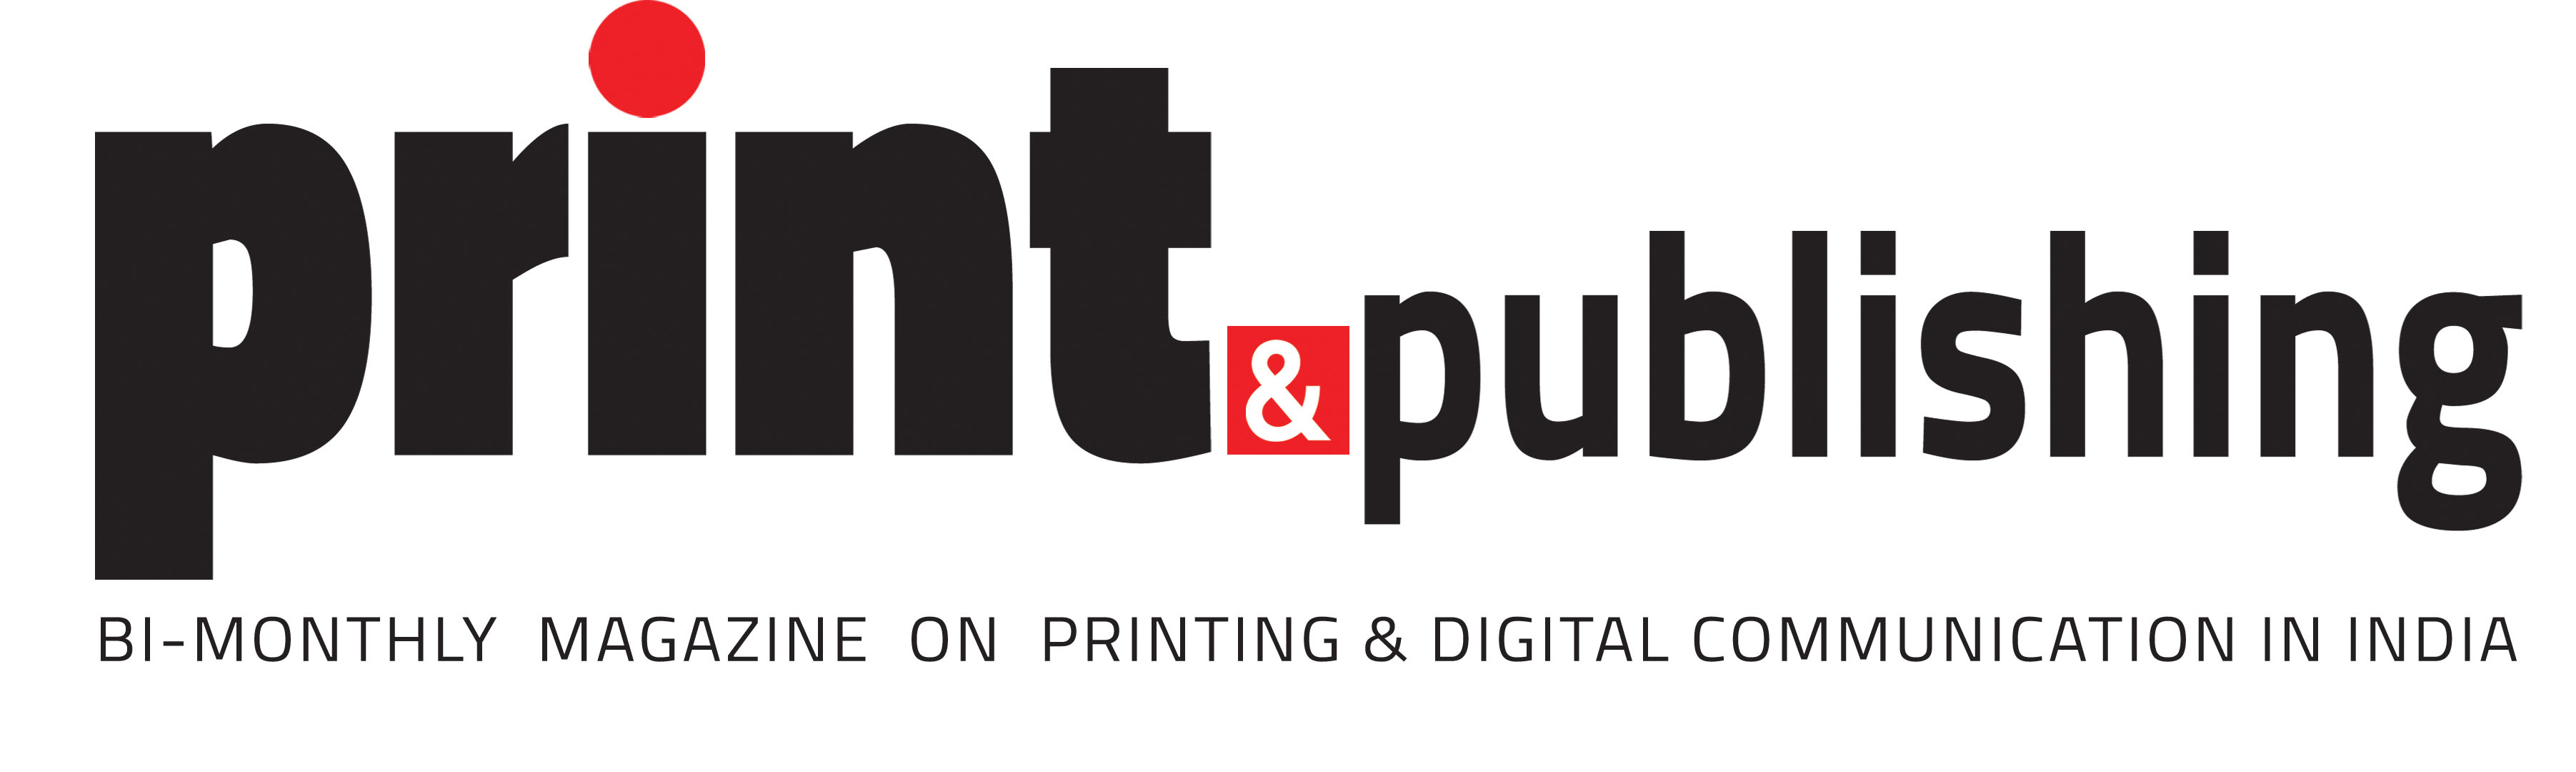 Paperworld Middle East - Print & Publishing